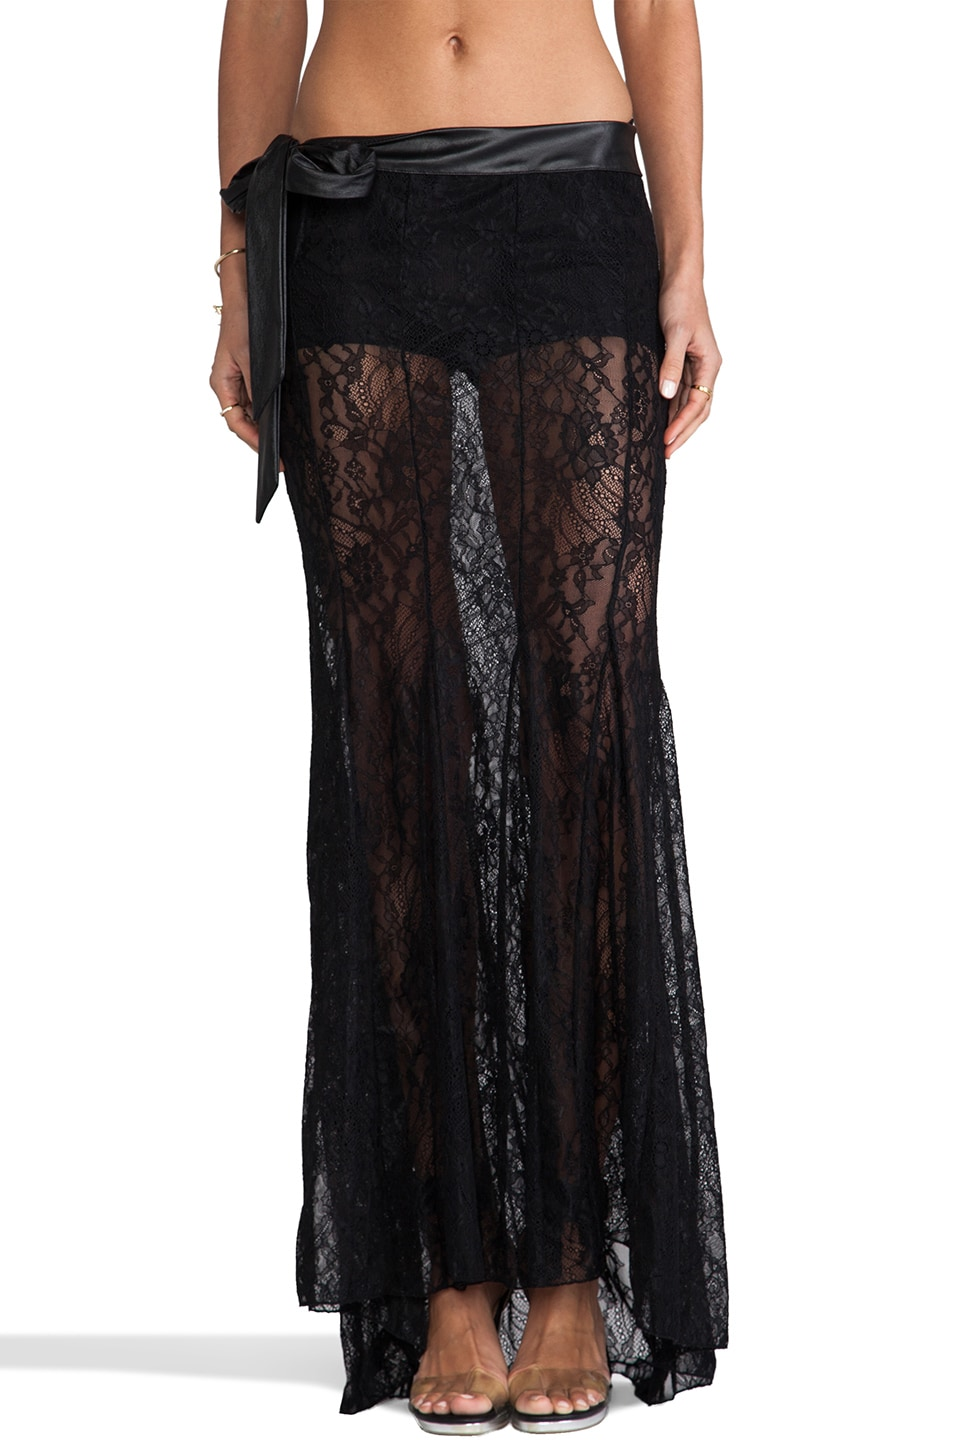 Beach Bunny Bedroom Eyes Maxi Skirt in Black